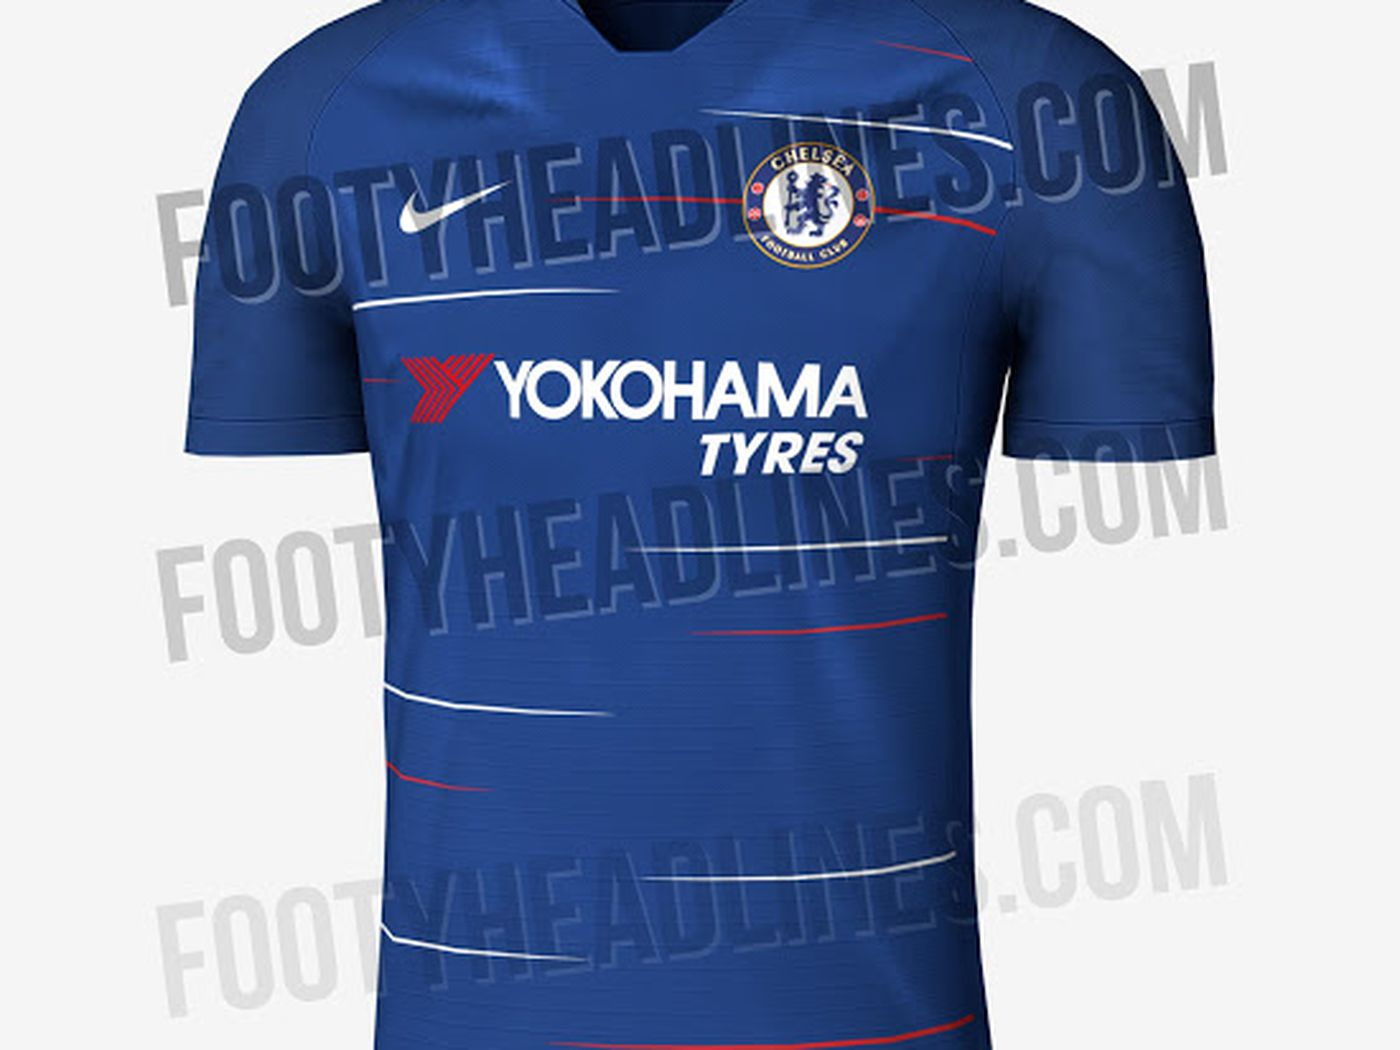 75248ad070 Chelsea 2018-19 home and away shirts leaked